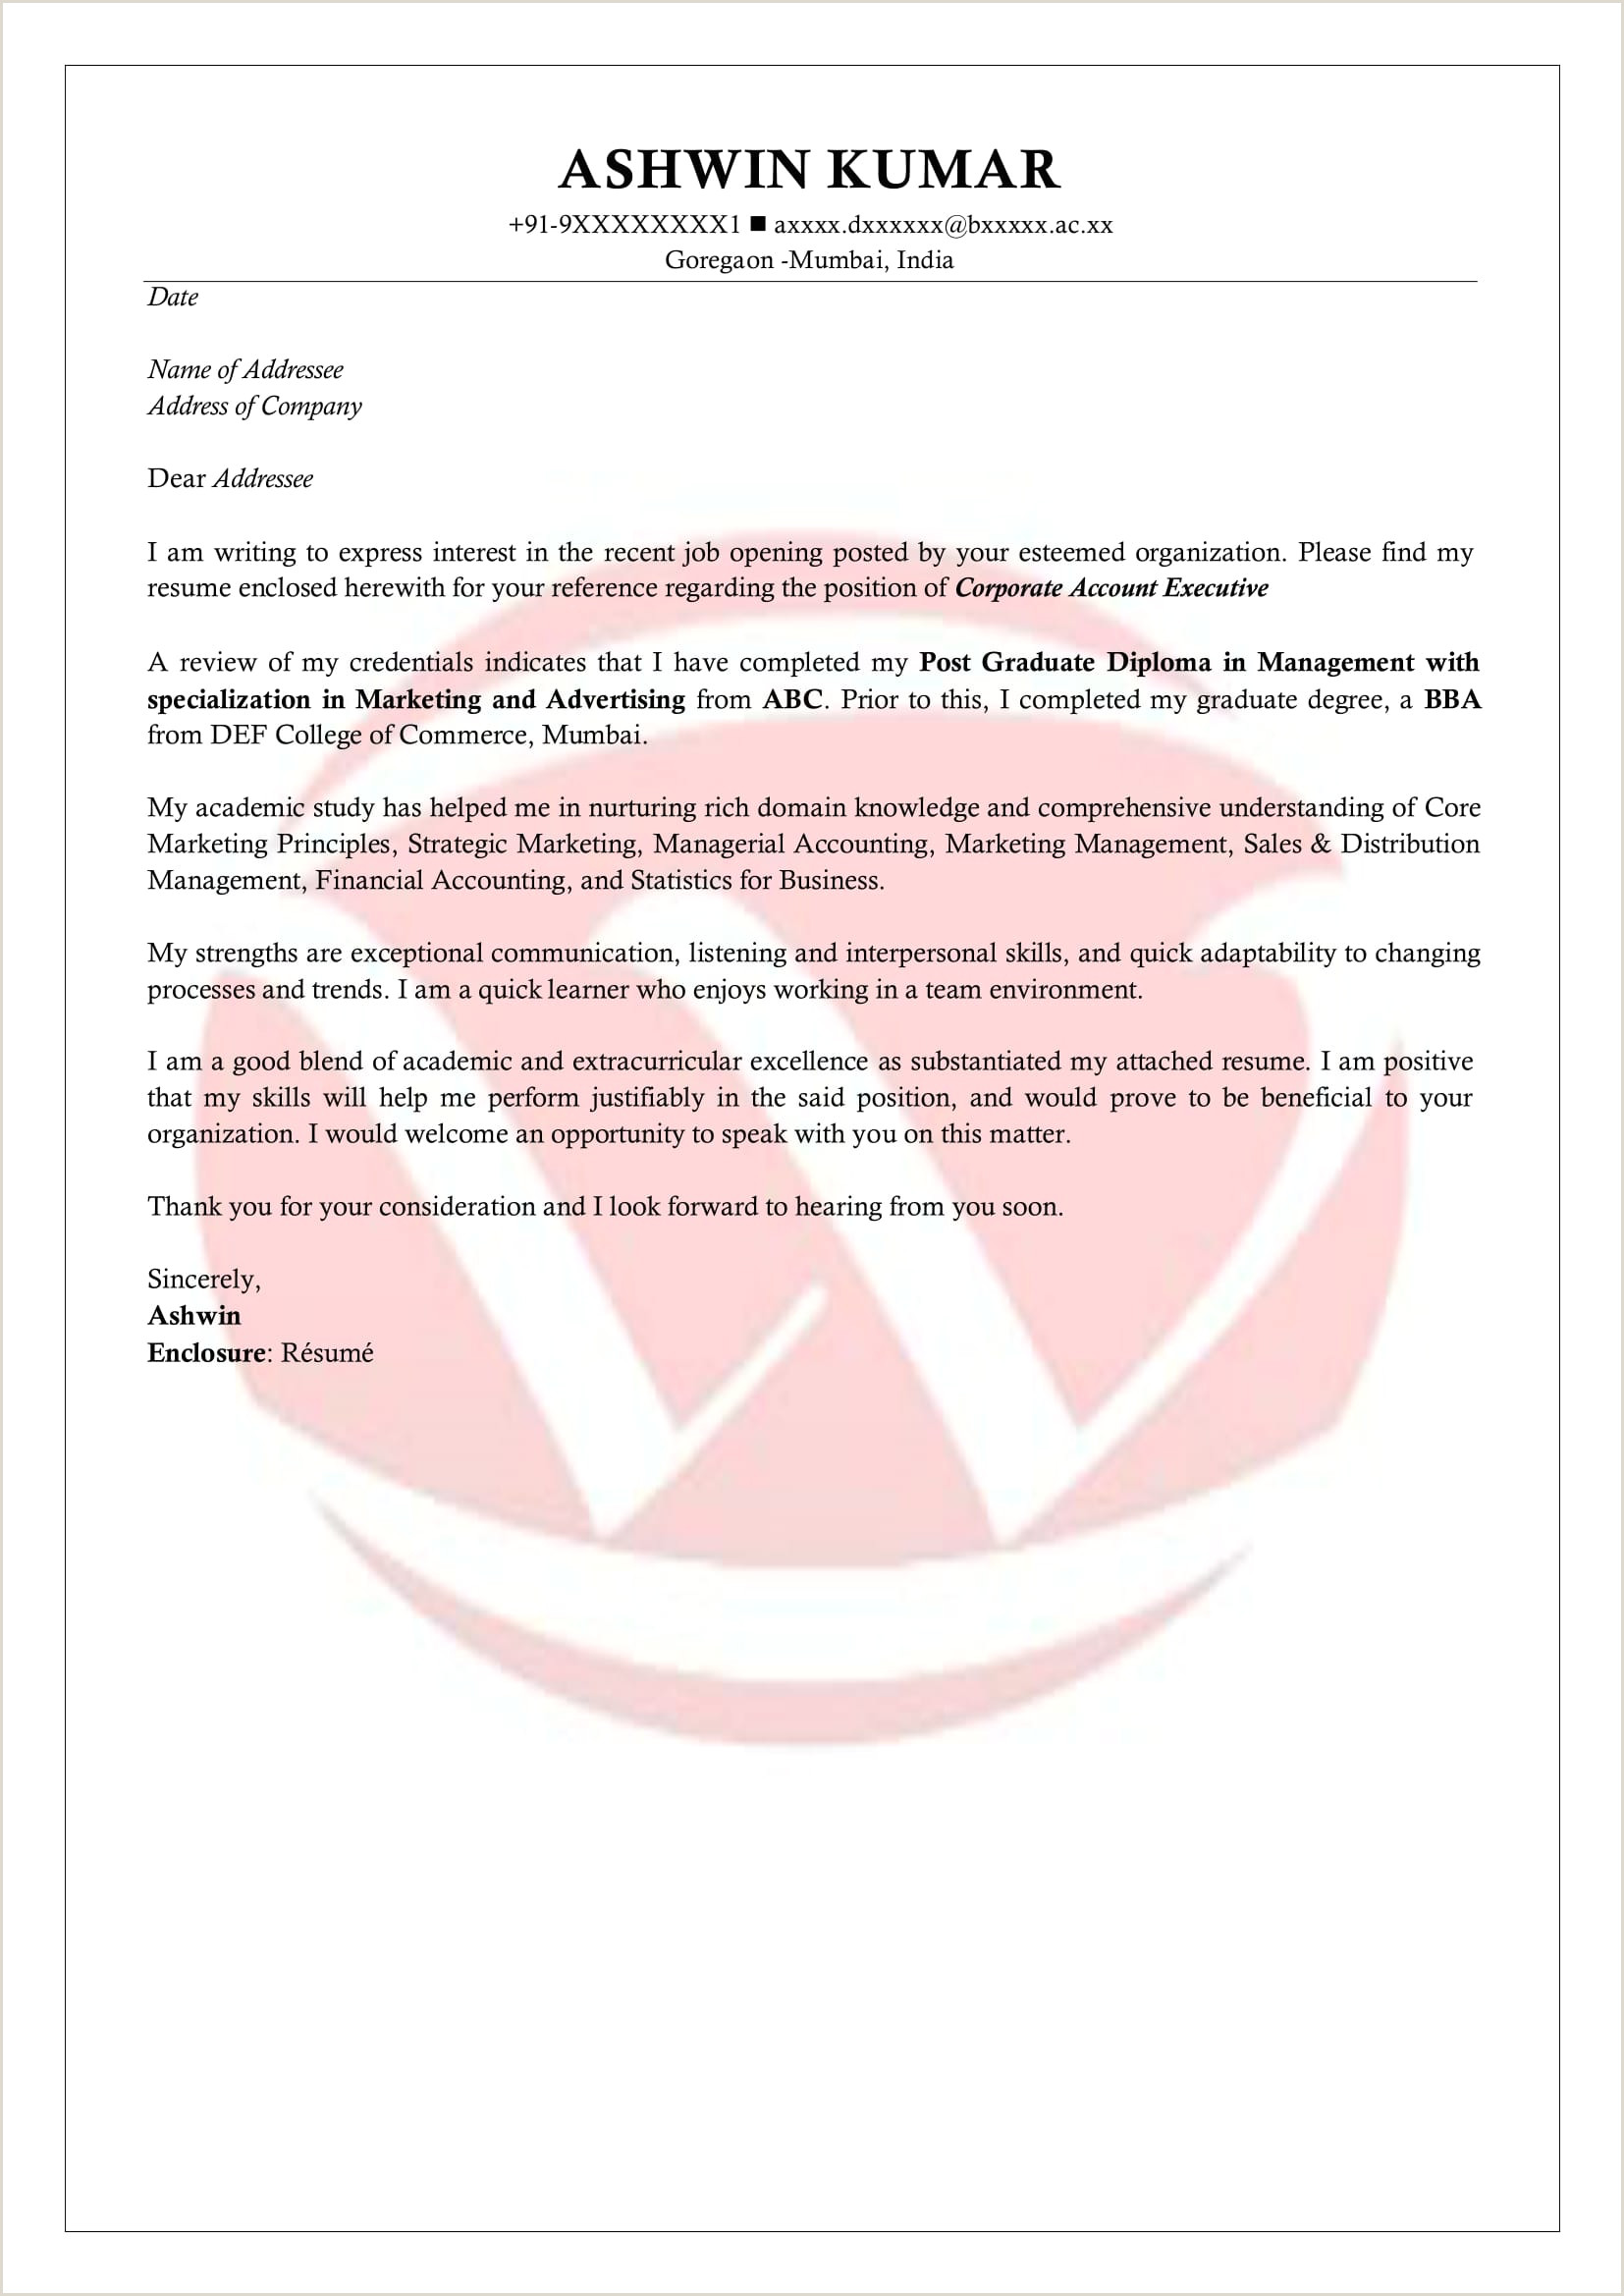 Cv Format For Fresher Chartered Accountant Freshers Sample Cover Letter Format Download Cover Letter